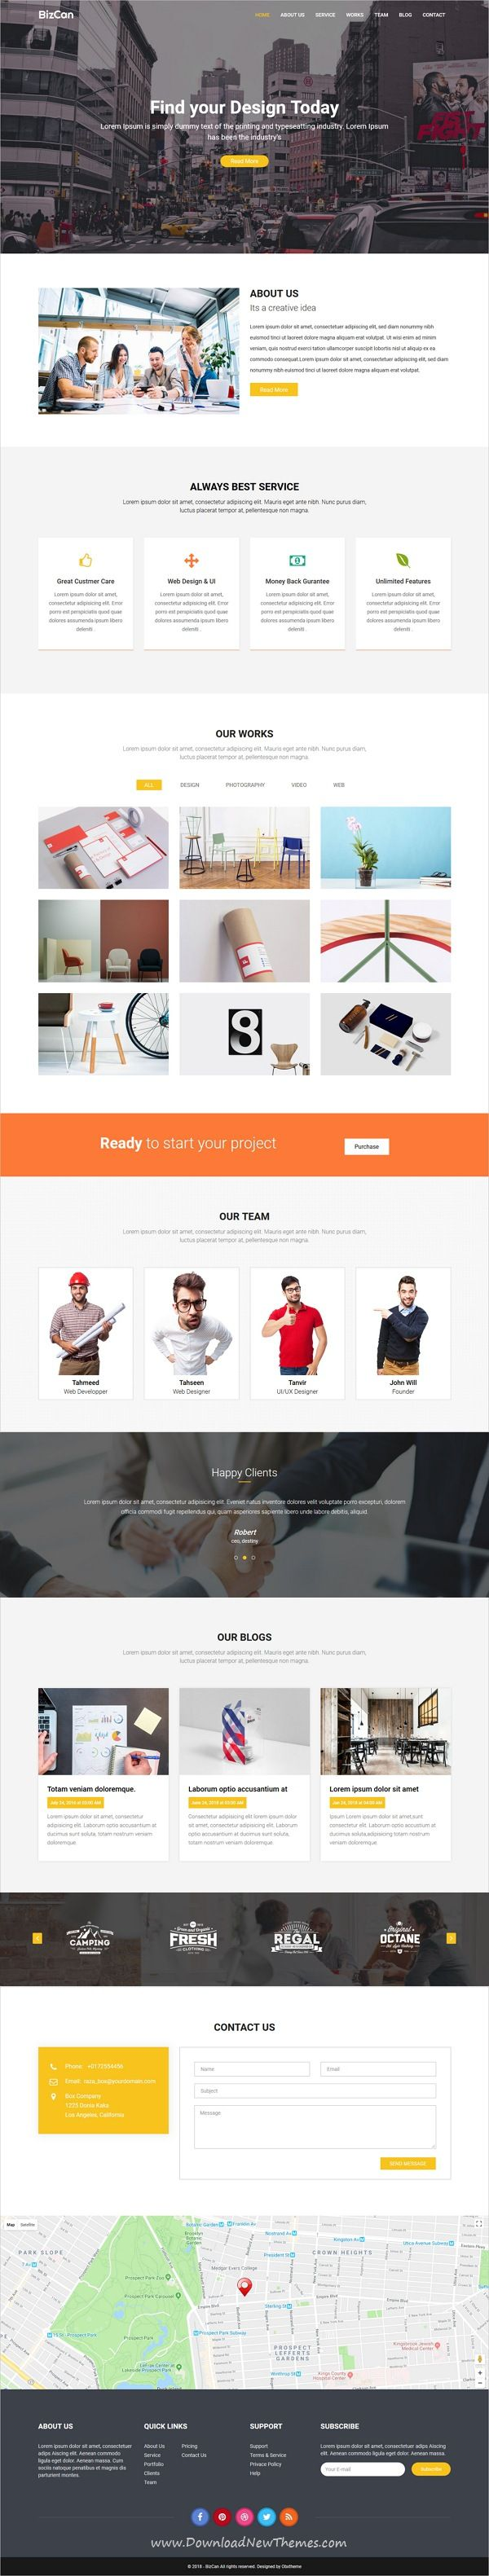 Bizcan is clean and modern design 3in1 responsive bootstrap #HTML #template for onepage #creative business #agency website to live preview & download click on image or Visit